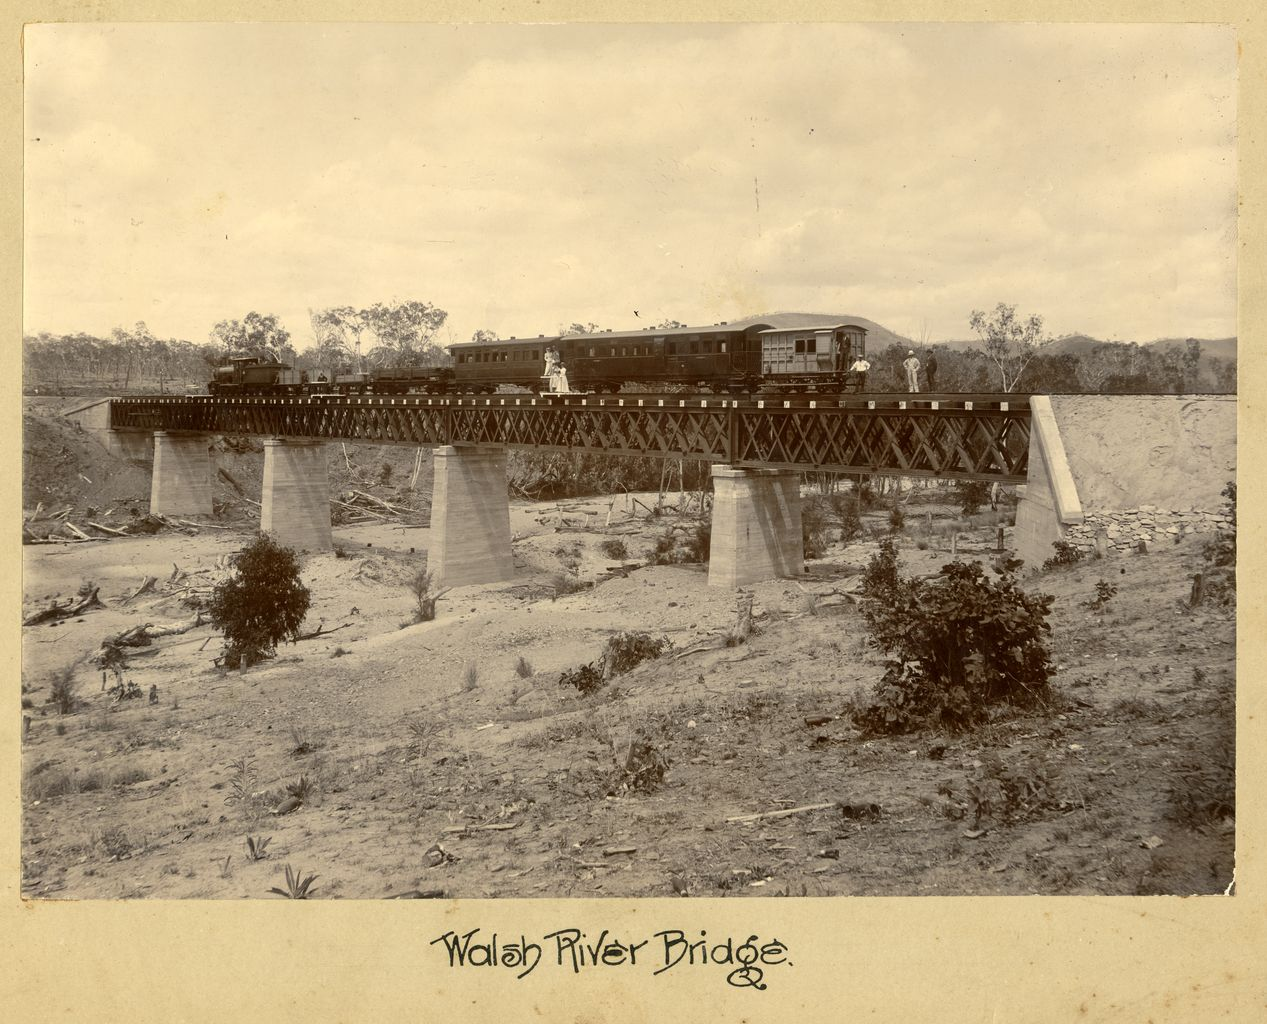 Image of Walsh River Brige, a B15 class locomotive with a mixed train stopped on railway bridge, with passengers standing on track and at entrance of carriage.